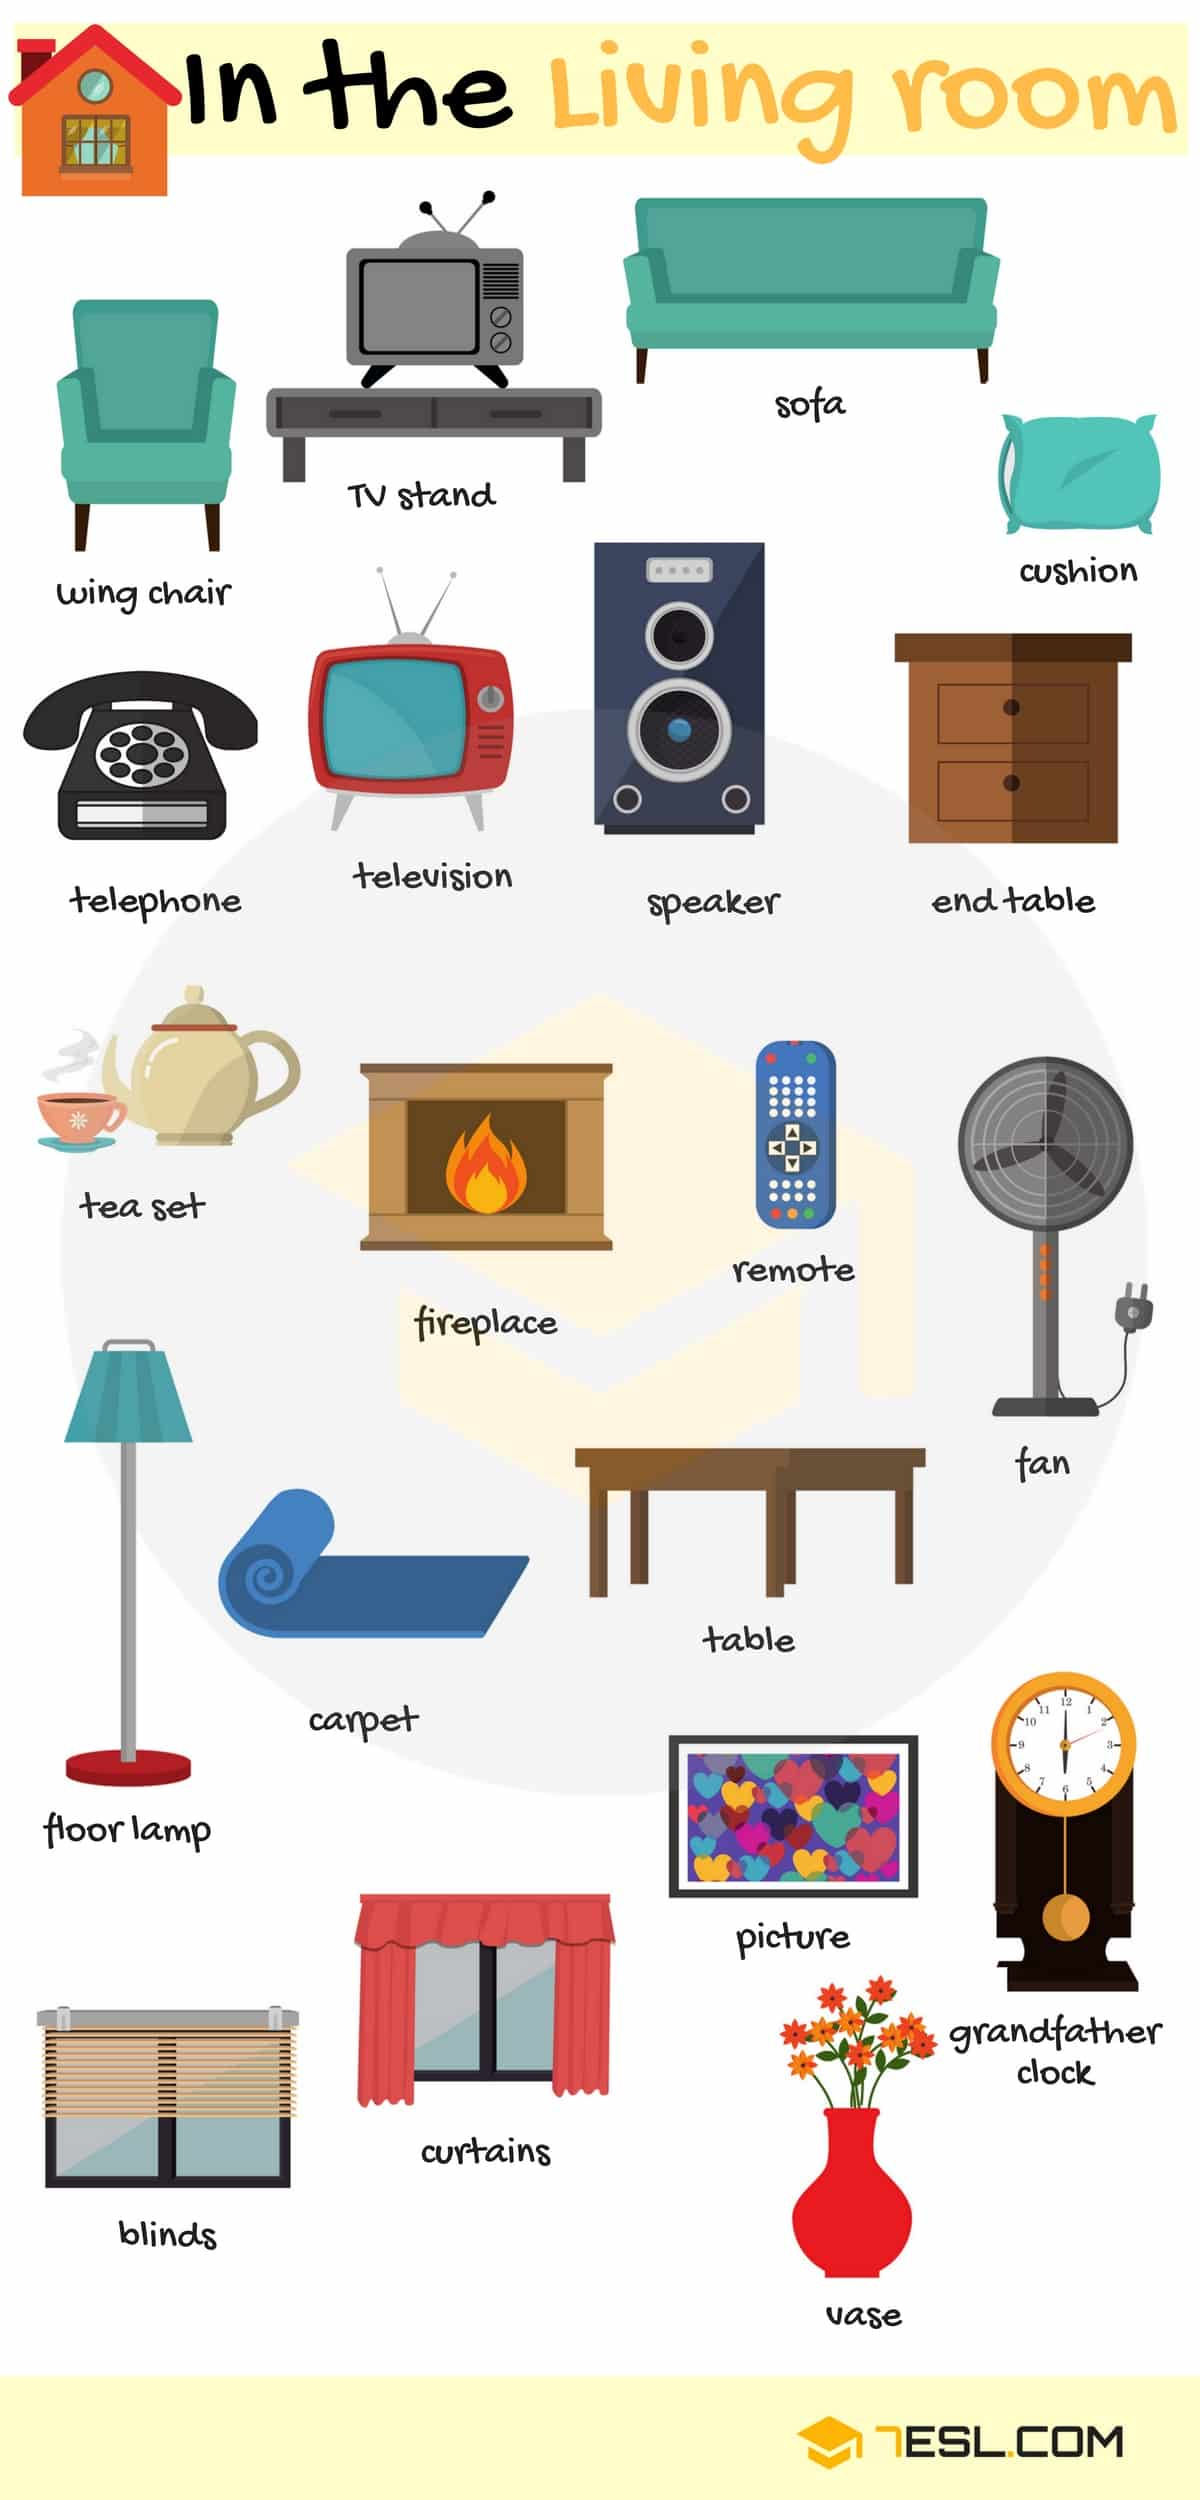 styles of chairs names dining room chair cushion covers furniture vocabulary in english rooms a house 7 e s l